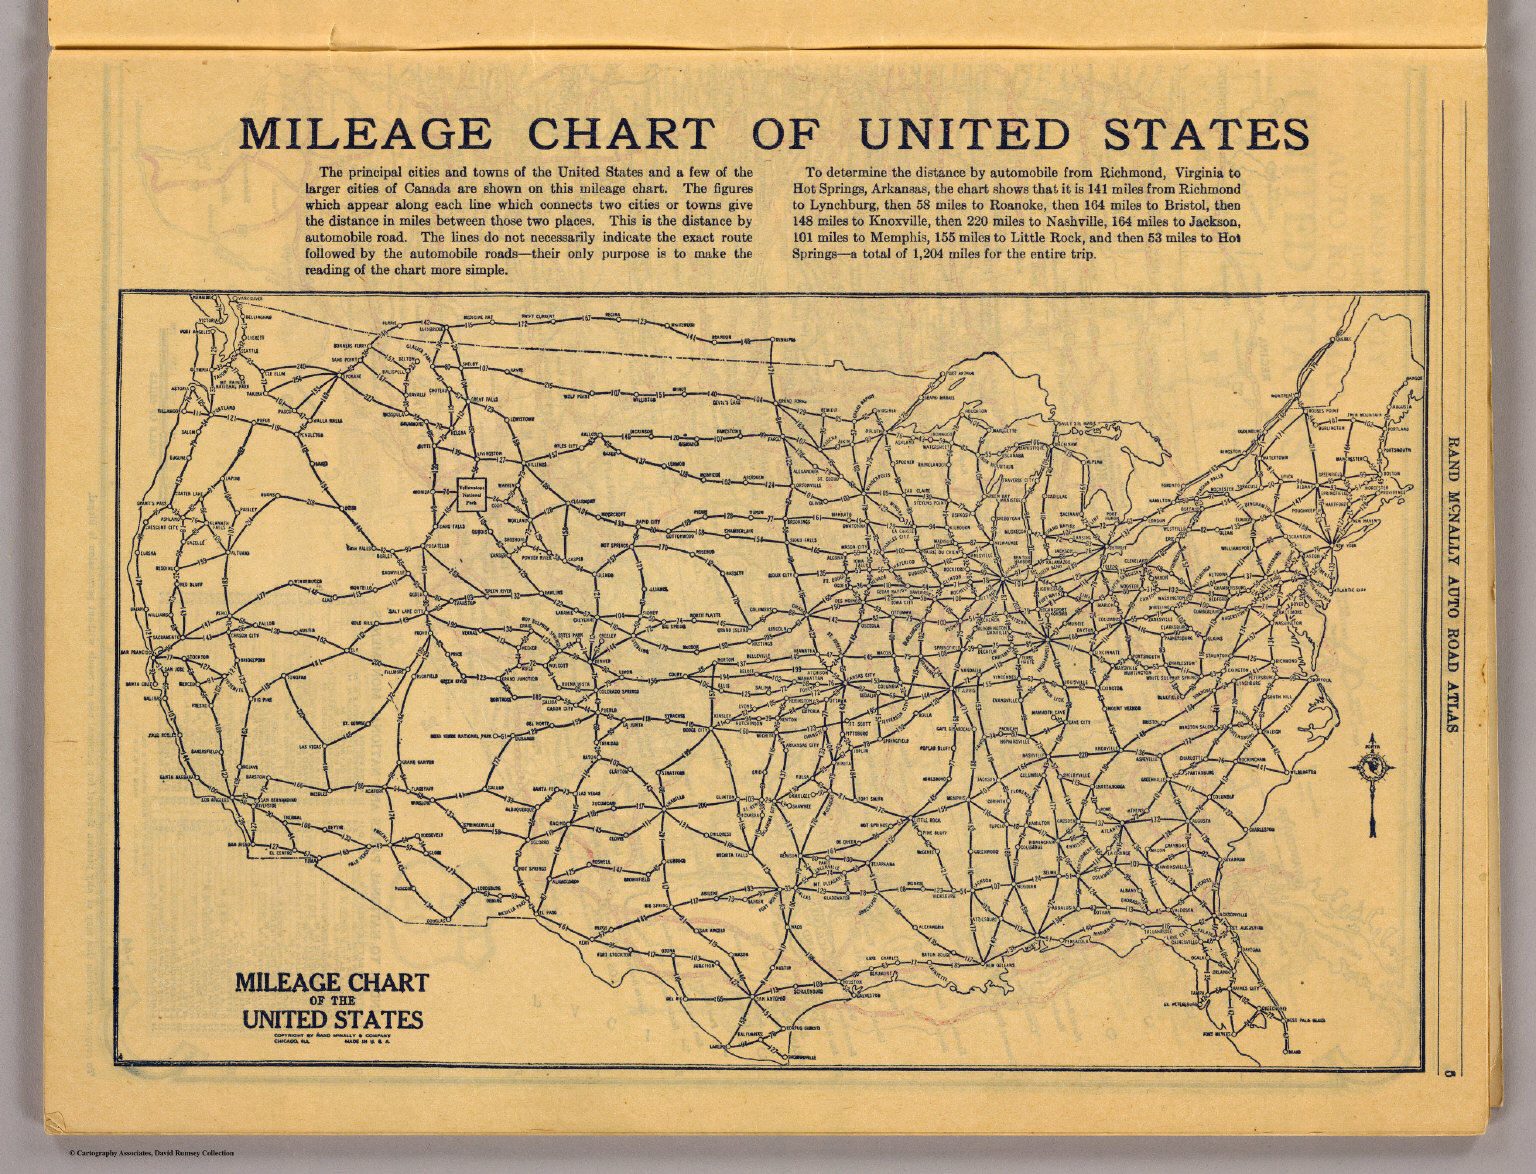 Mileage chart U.S. - David Rumsey Historical Map Collection on maps and directions, maps to print and trace, maps car, maps state, maps food, maps of coastal northern california, maps city,